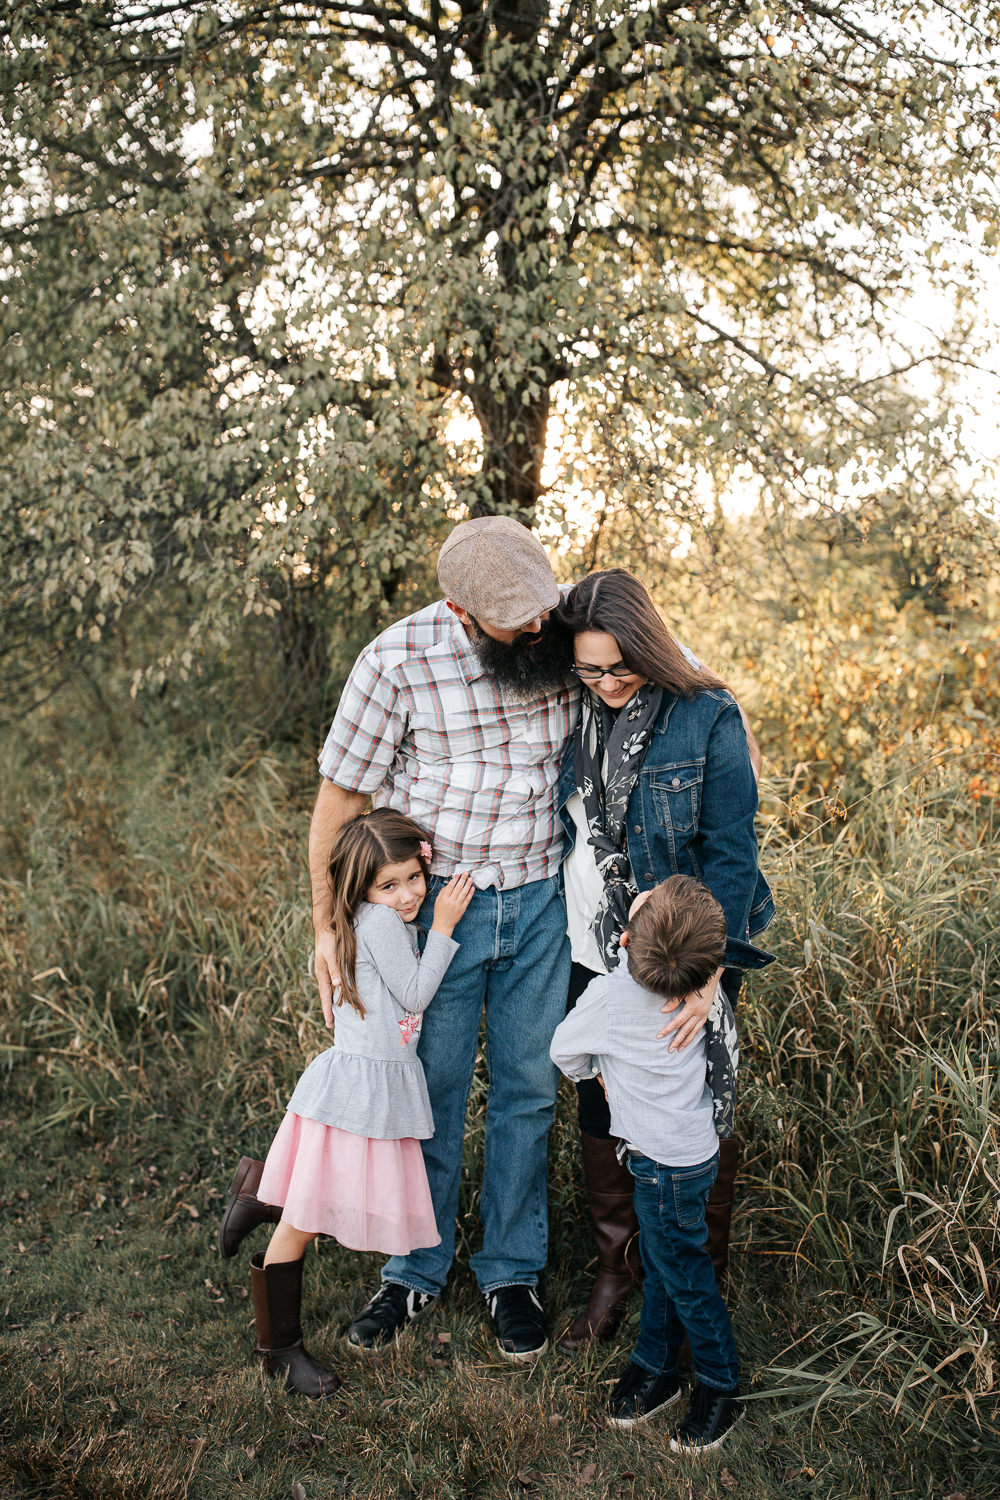 family of 4 standing together in grass field in front of tree, 5 year old girl hugging dad's leg, 4 year old boy looking up at mom, both parents looking at son -Barrie Lifestyle Photography